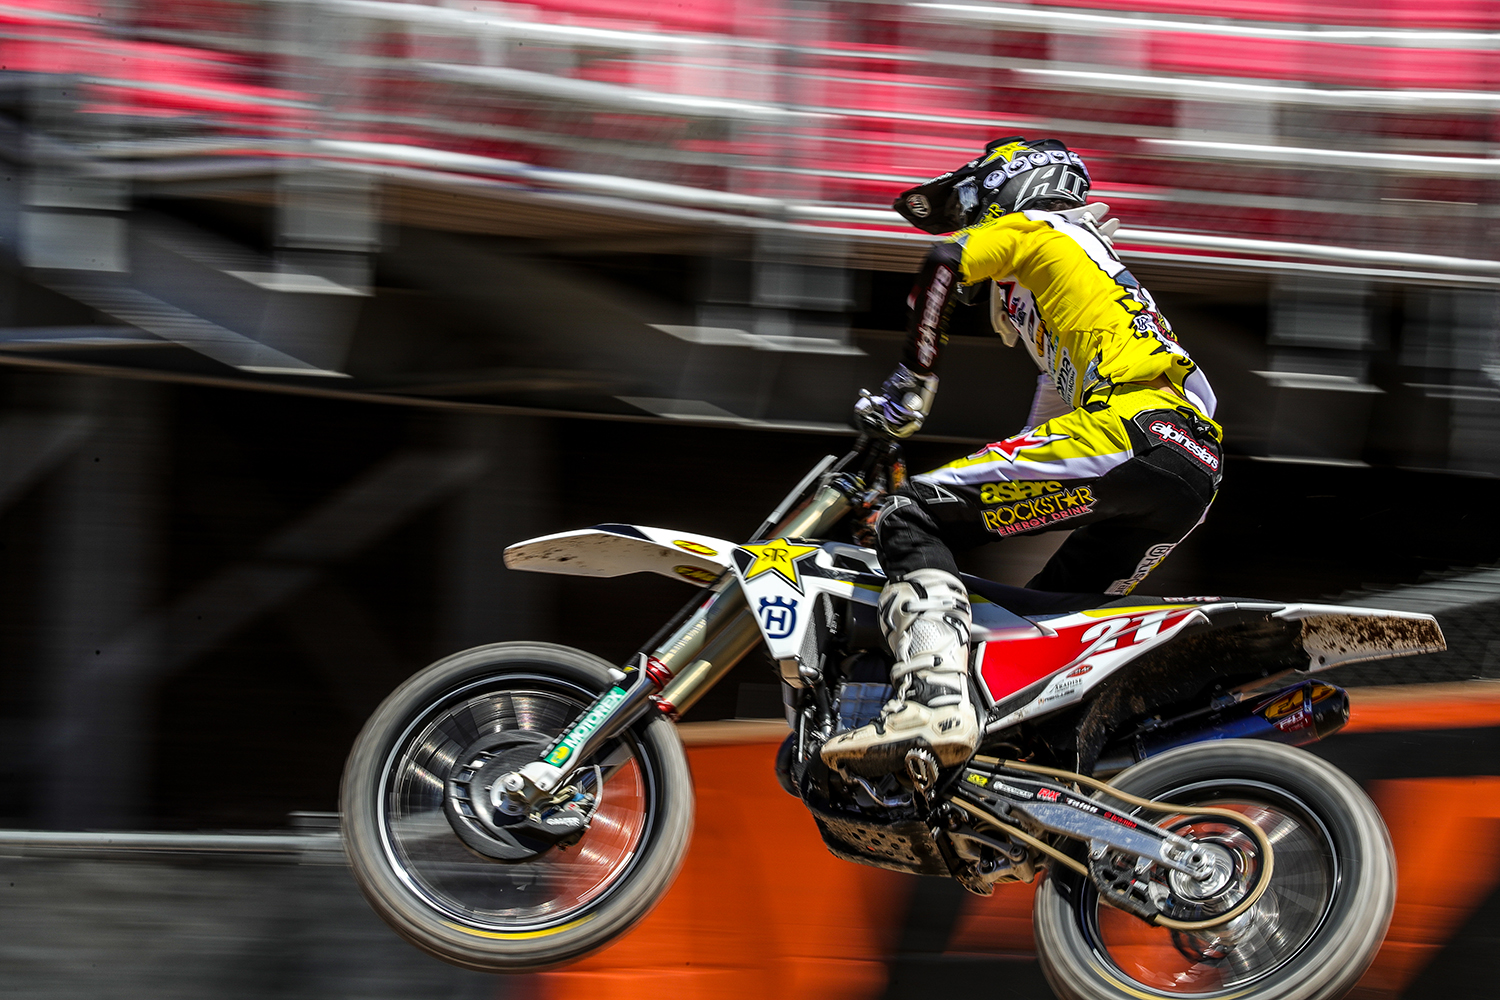 JASON ANDERSON SUPERCROSS